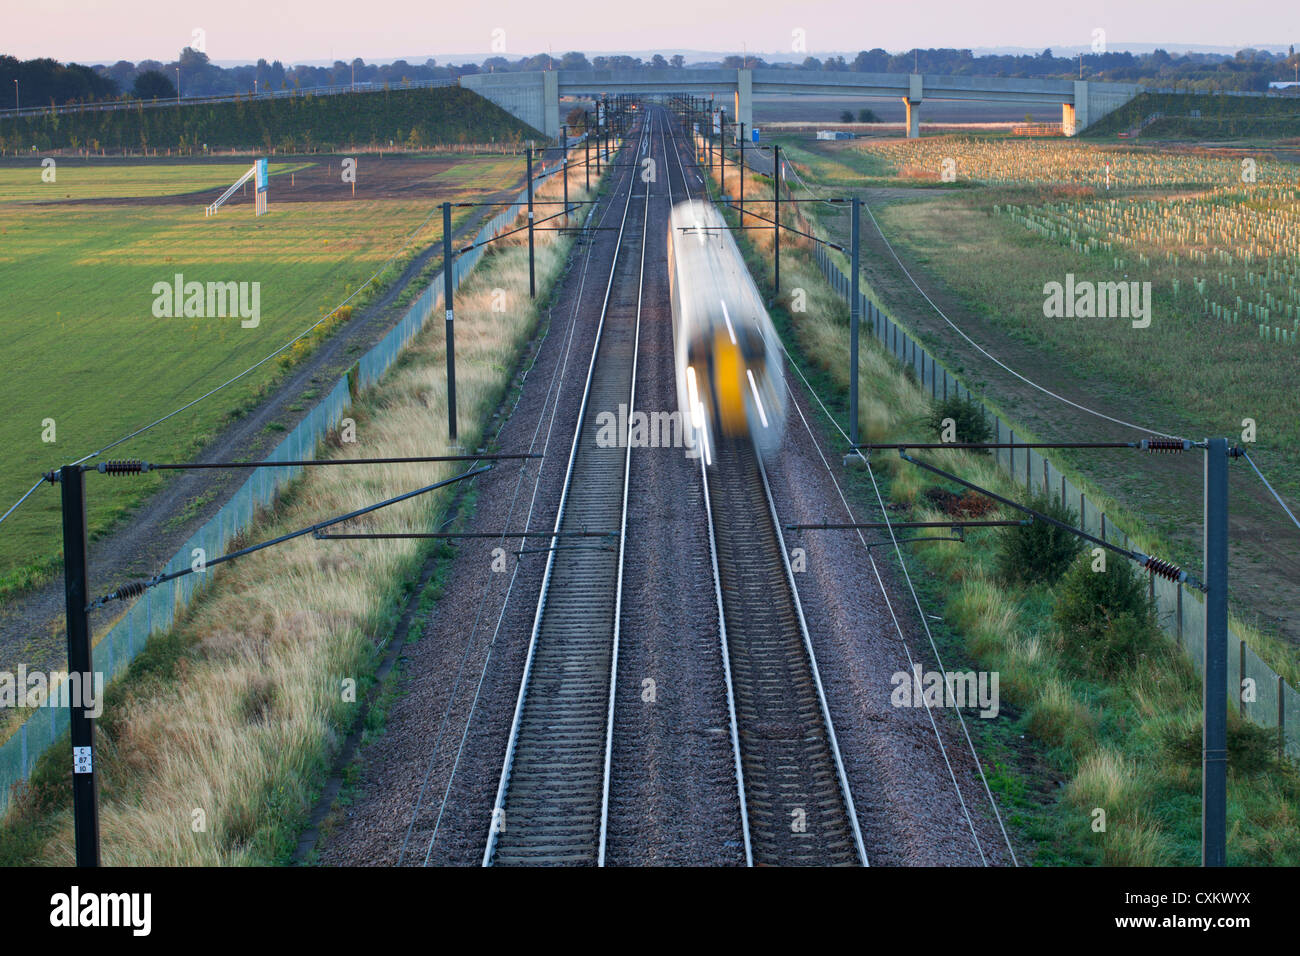 Intercity train on railway track, Cambridge England UK - Stock Image